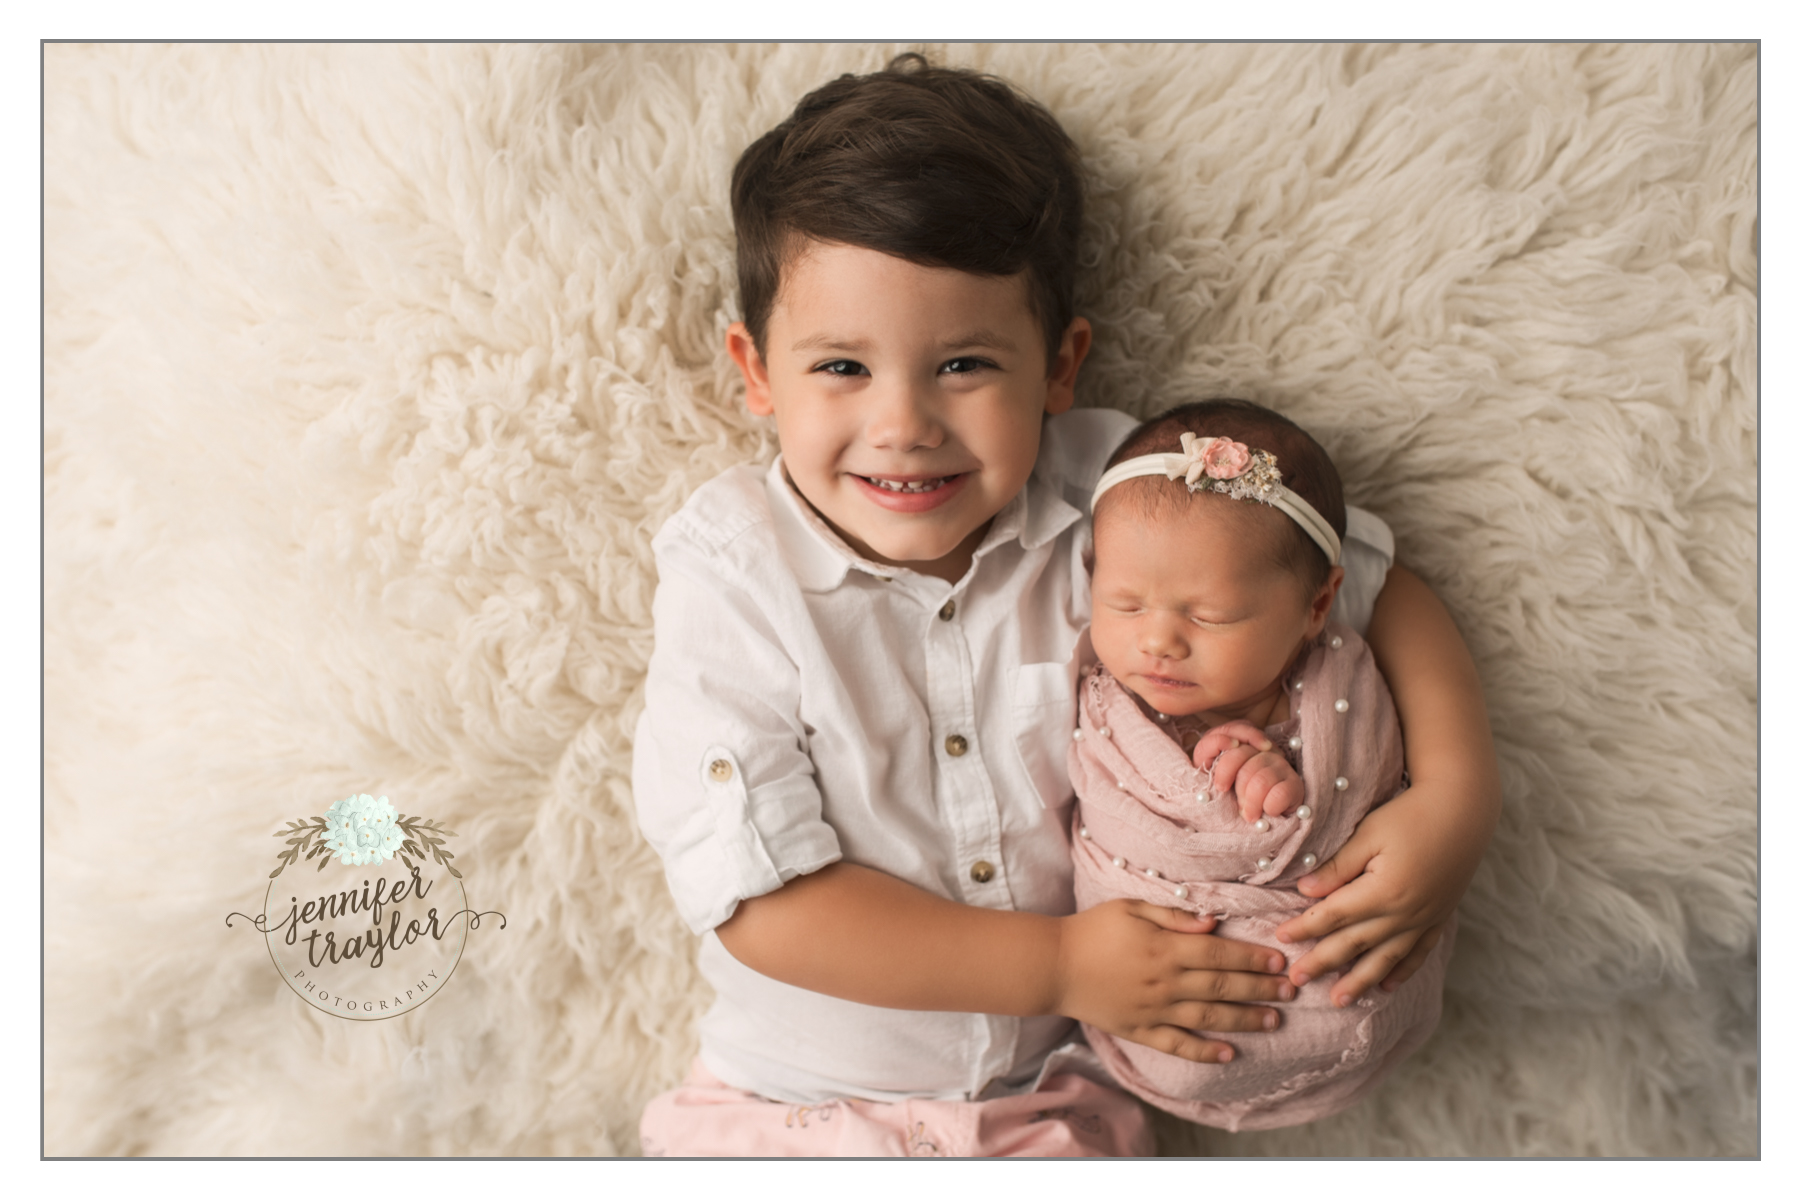 One of my favorite type of sessions is a newborn session that includes an older sibling that i have photographed as a newborn as well